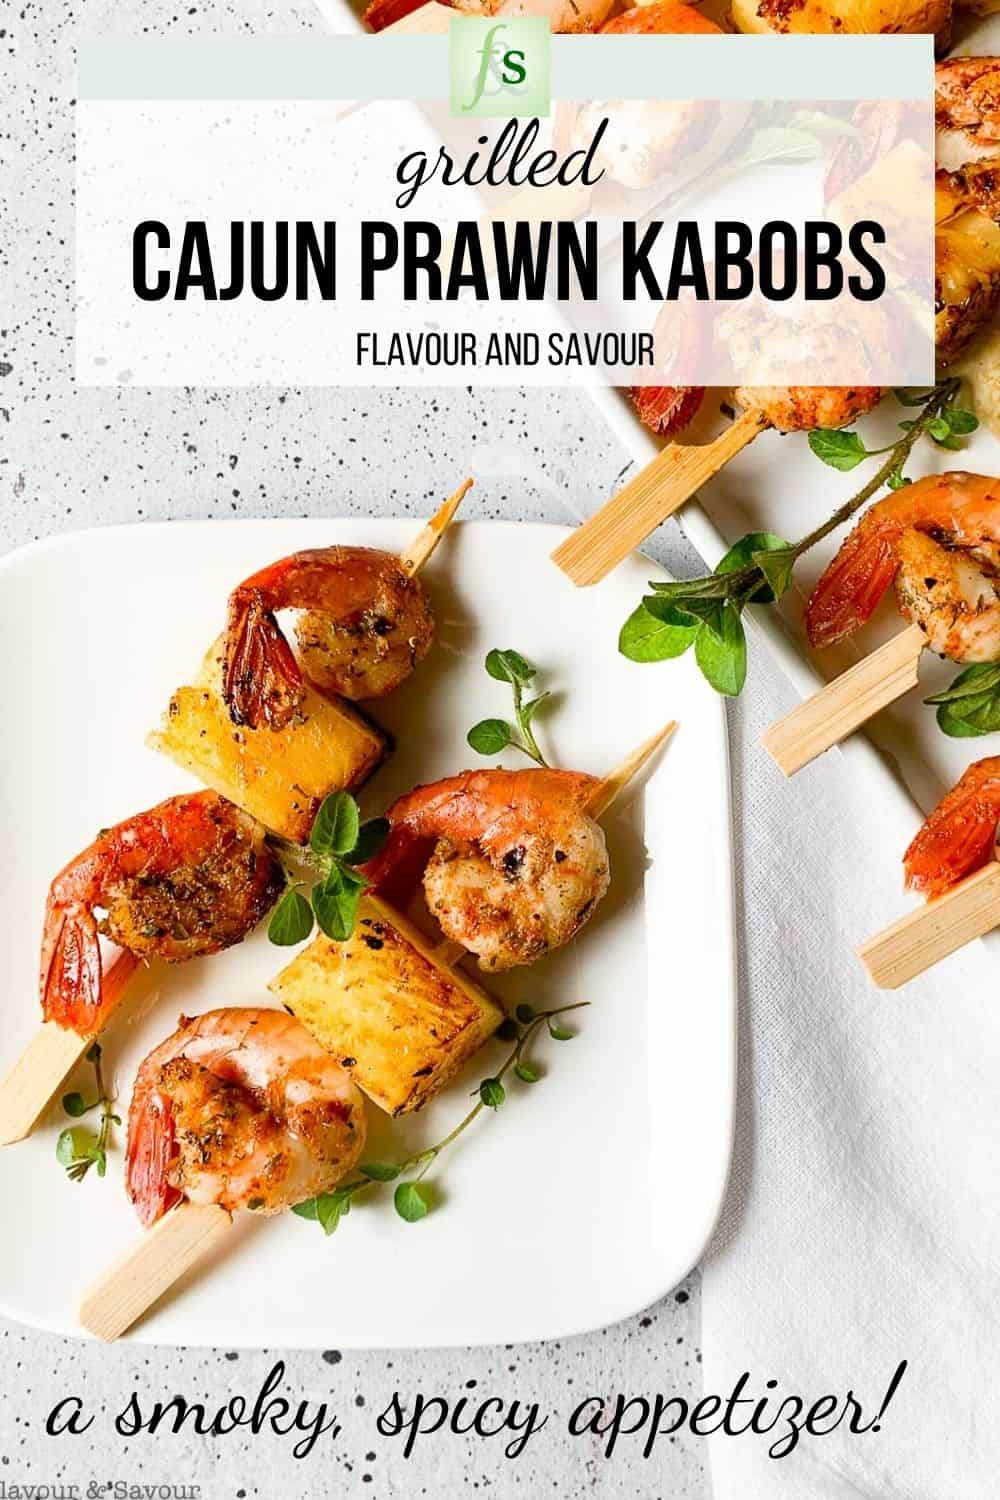 Image with text for grilled Cajun Prawn Kabobs